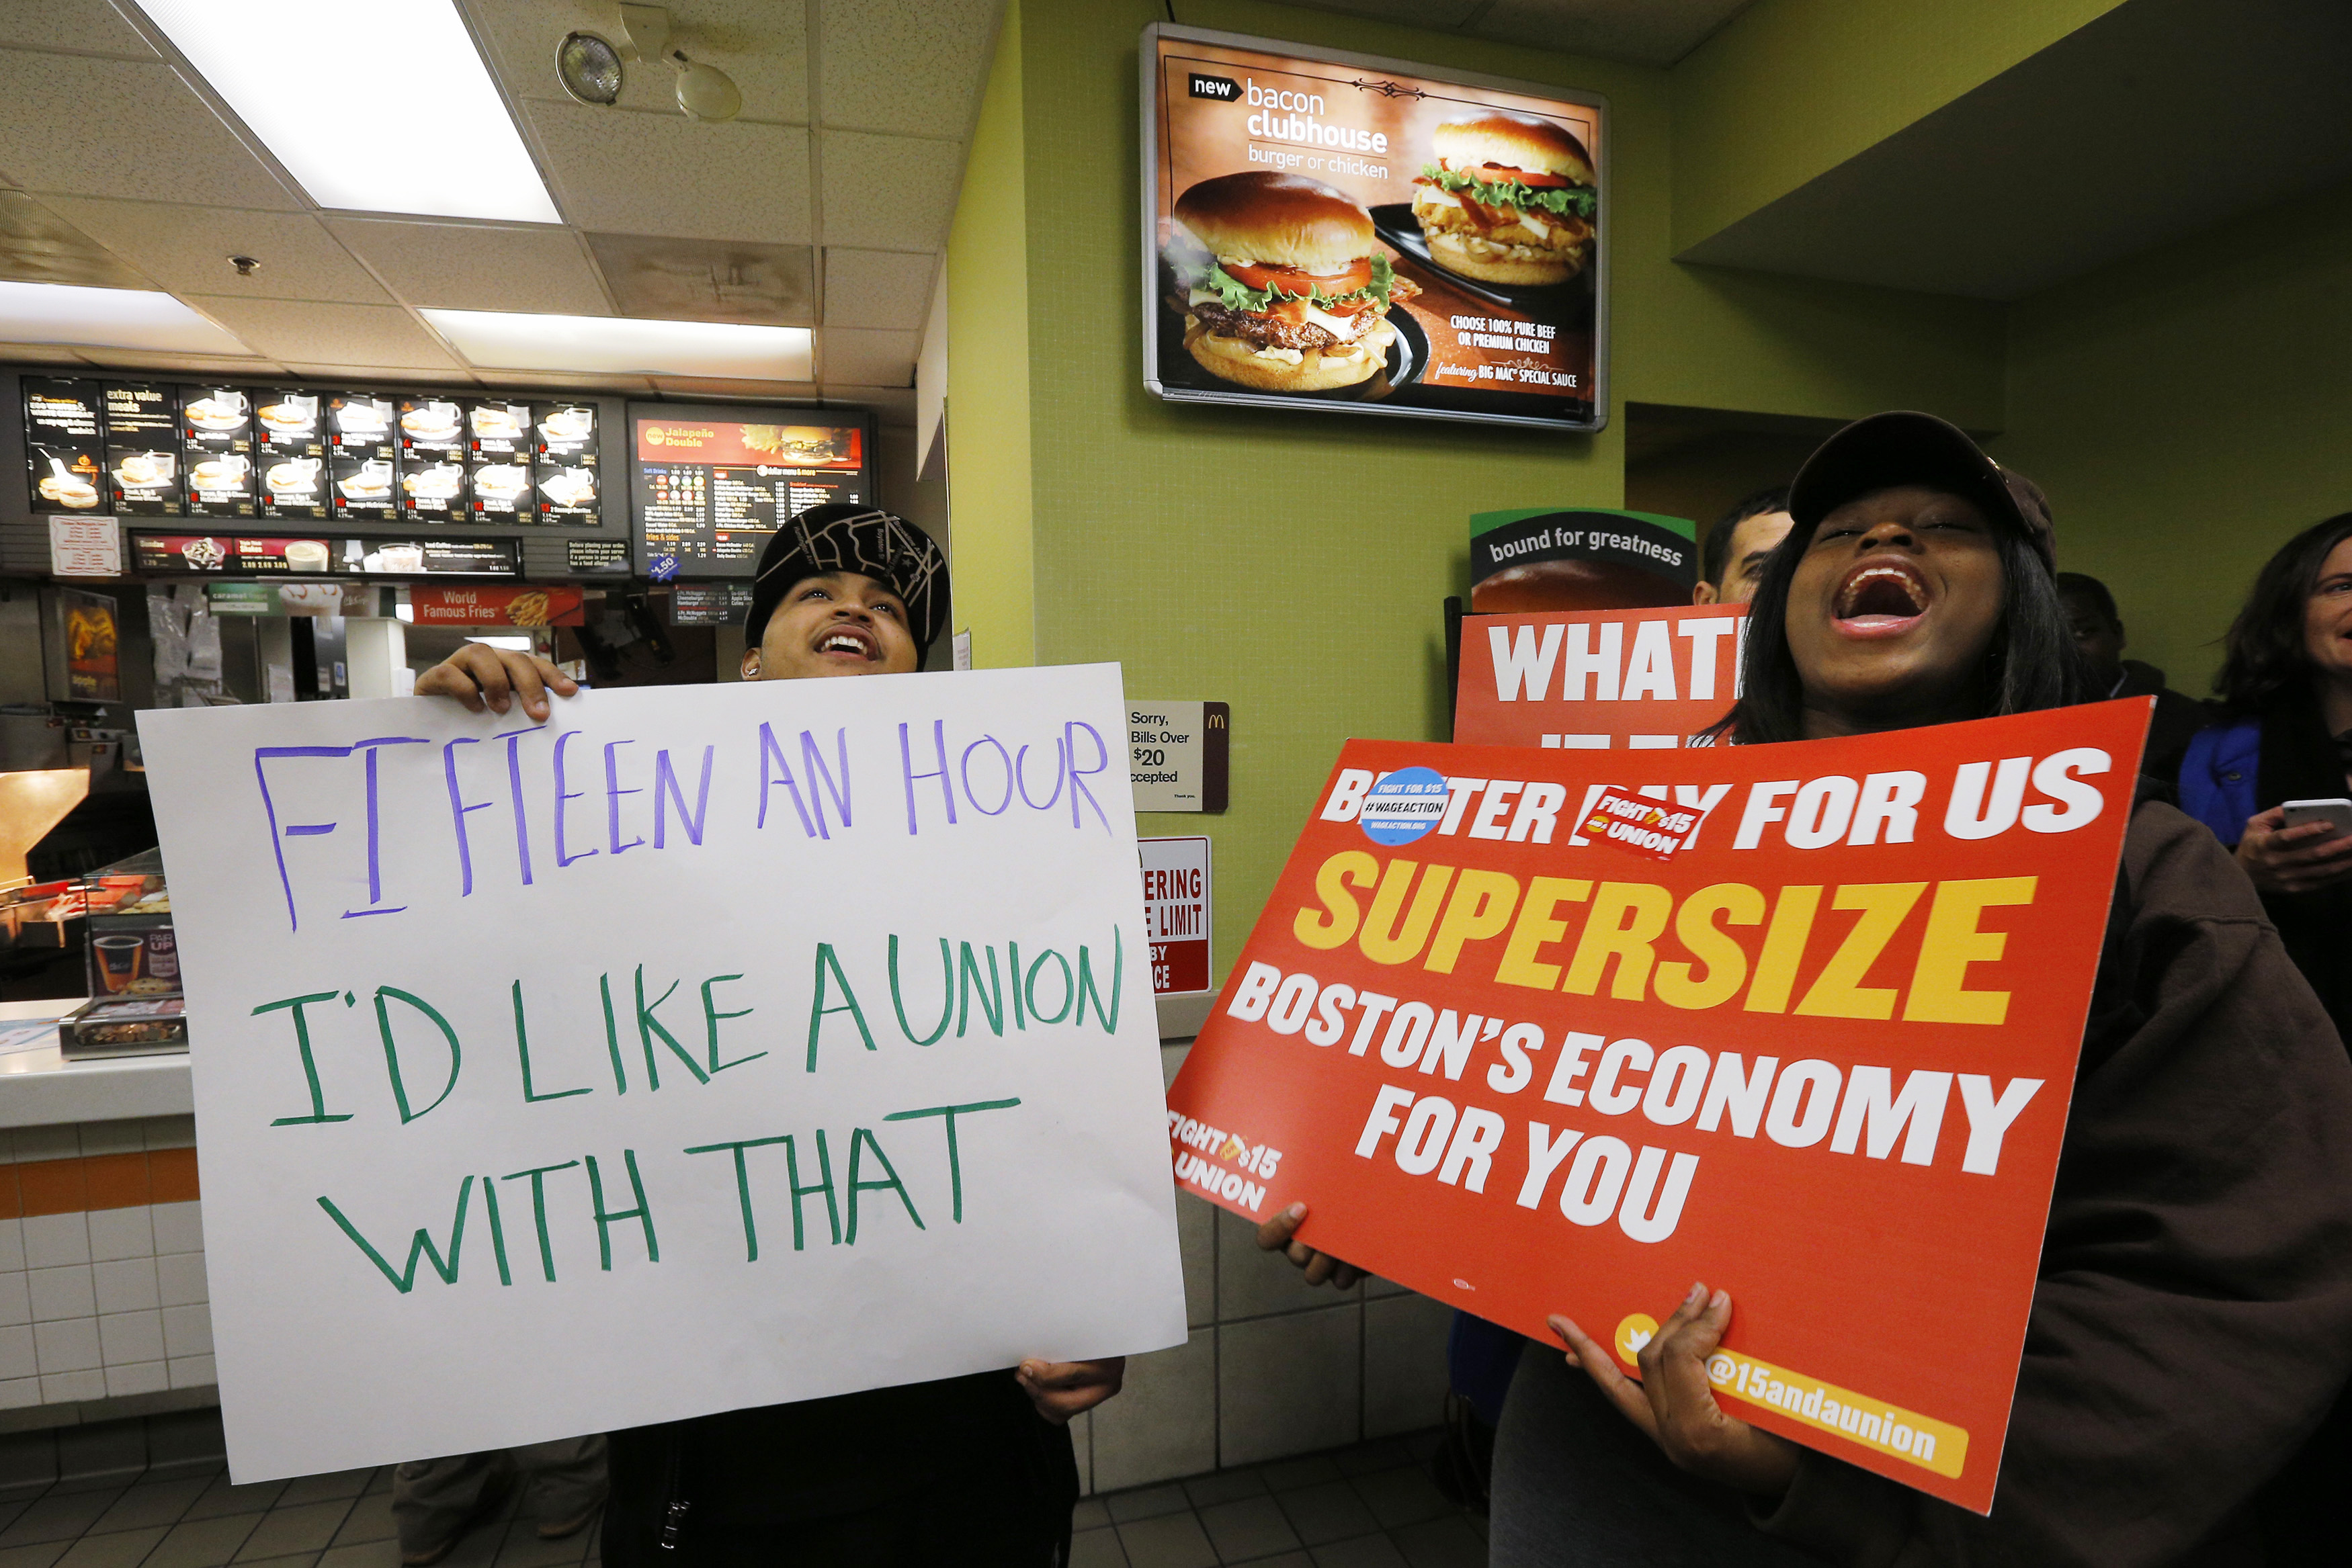 Scores of fast food workers and their supporters calling for a $15 minimum wage fill a McDonalds restaurant in Chelsea, Massachusetts December 4, 2014. REUTERS/Brian Snyder